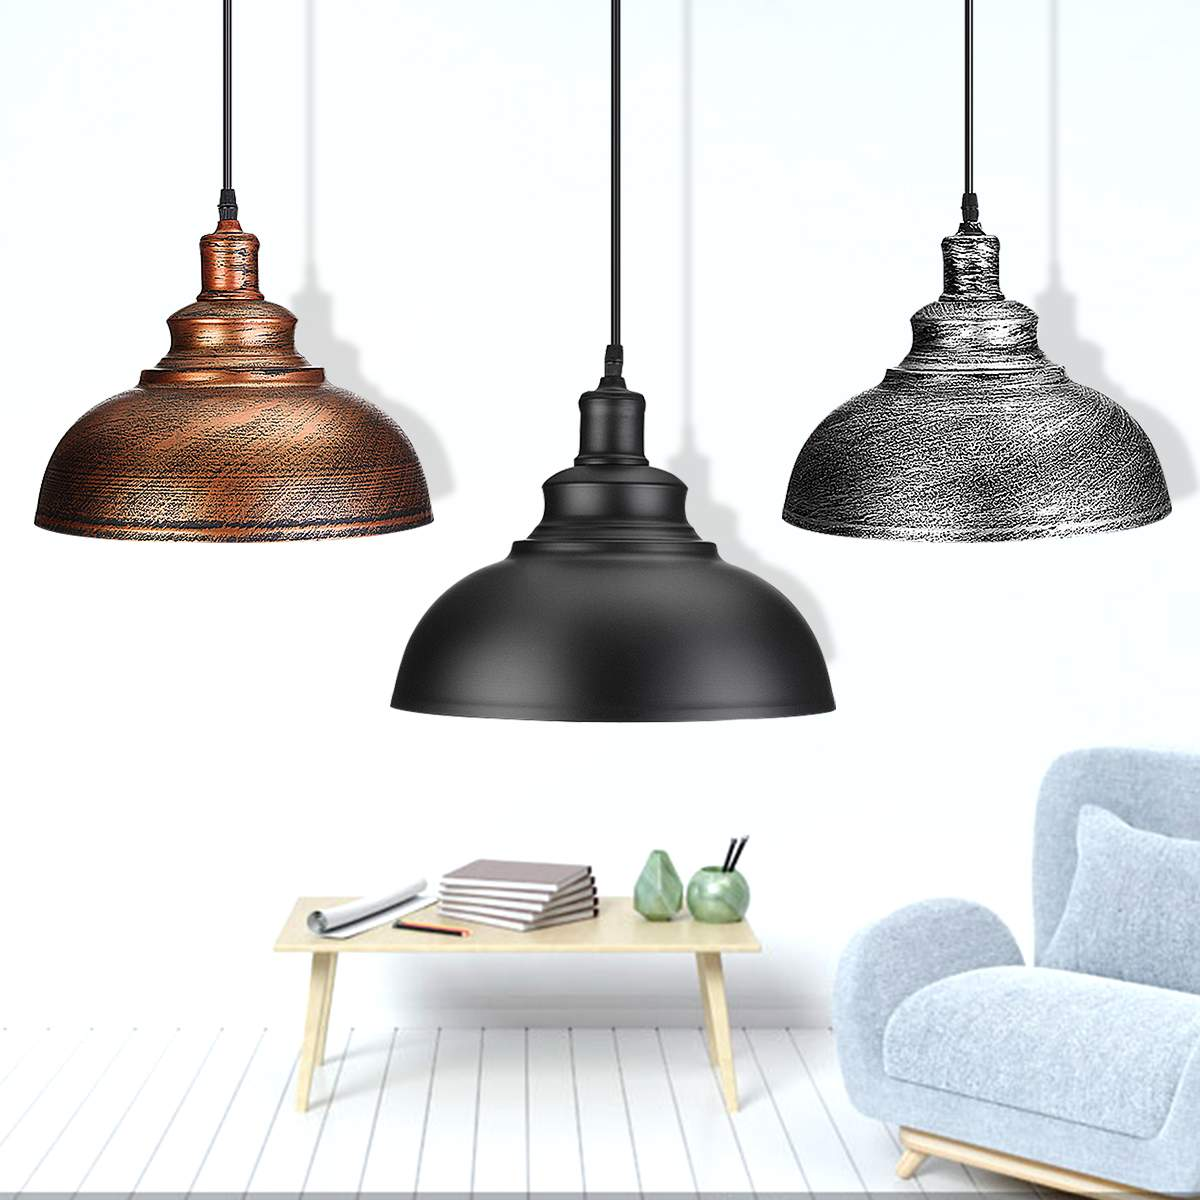 Modern 3 Style Pendant Lights Hanging E27 Edison Bulb Night Lamp Fixture Loft Bar Living Room Home Decor Novelty Lighting